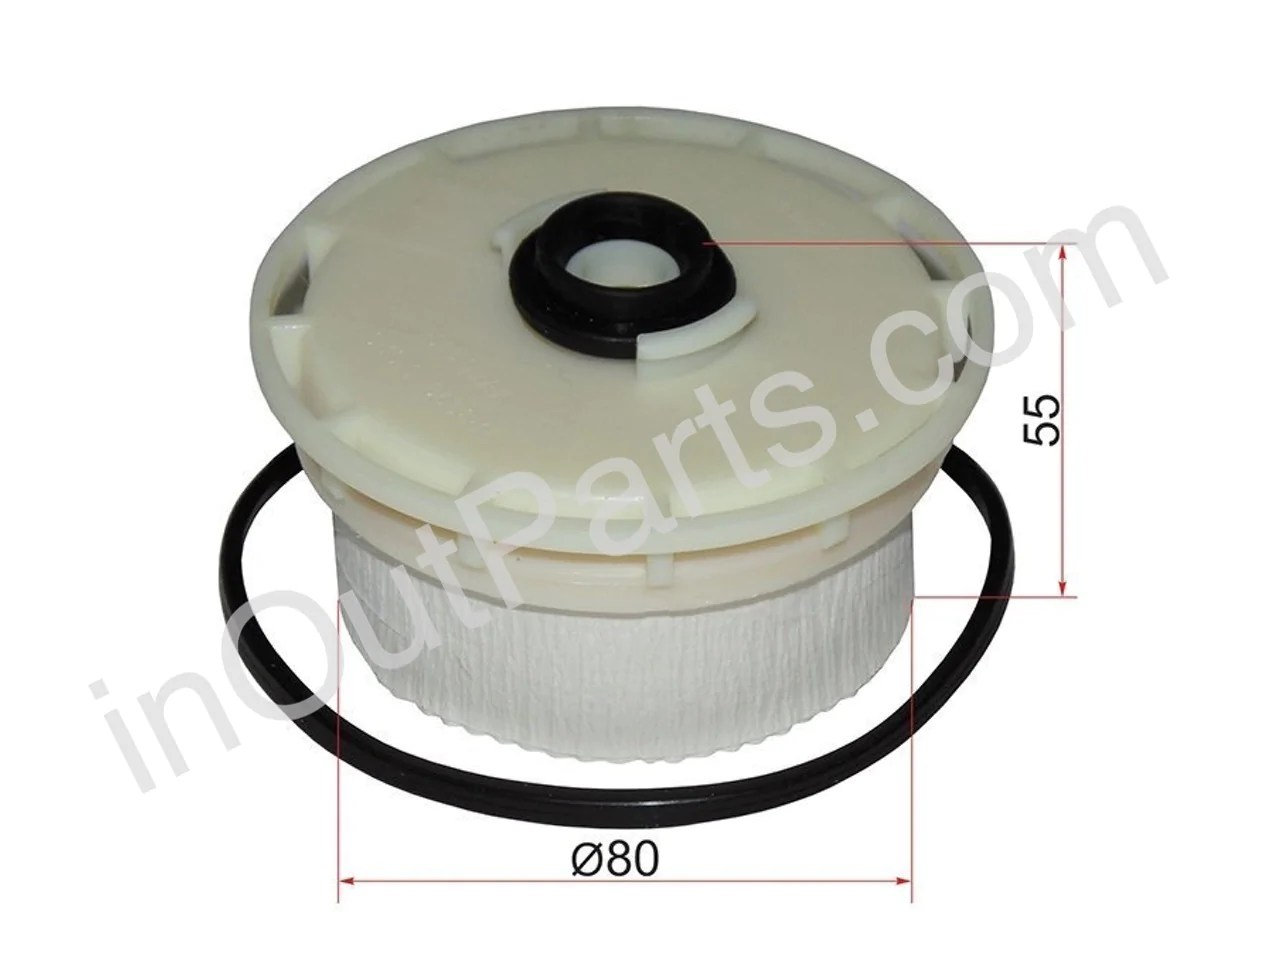 medium resolution of fuel filter diesel fits toyota land cruiser 200 2007 2008 2009 2010 2011 2012 2013 2014 2015 2016